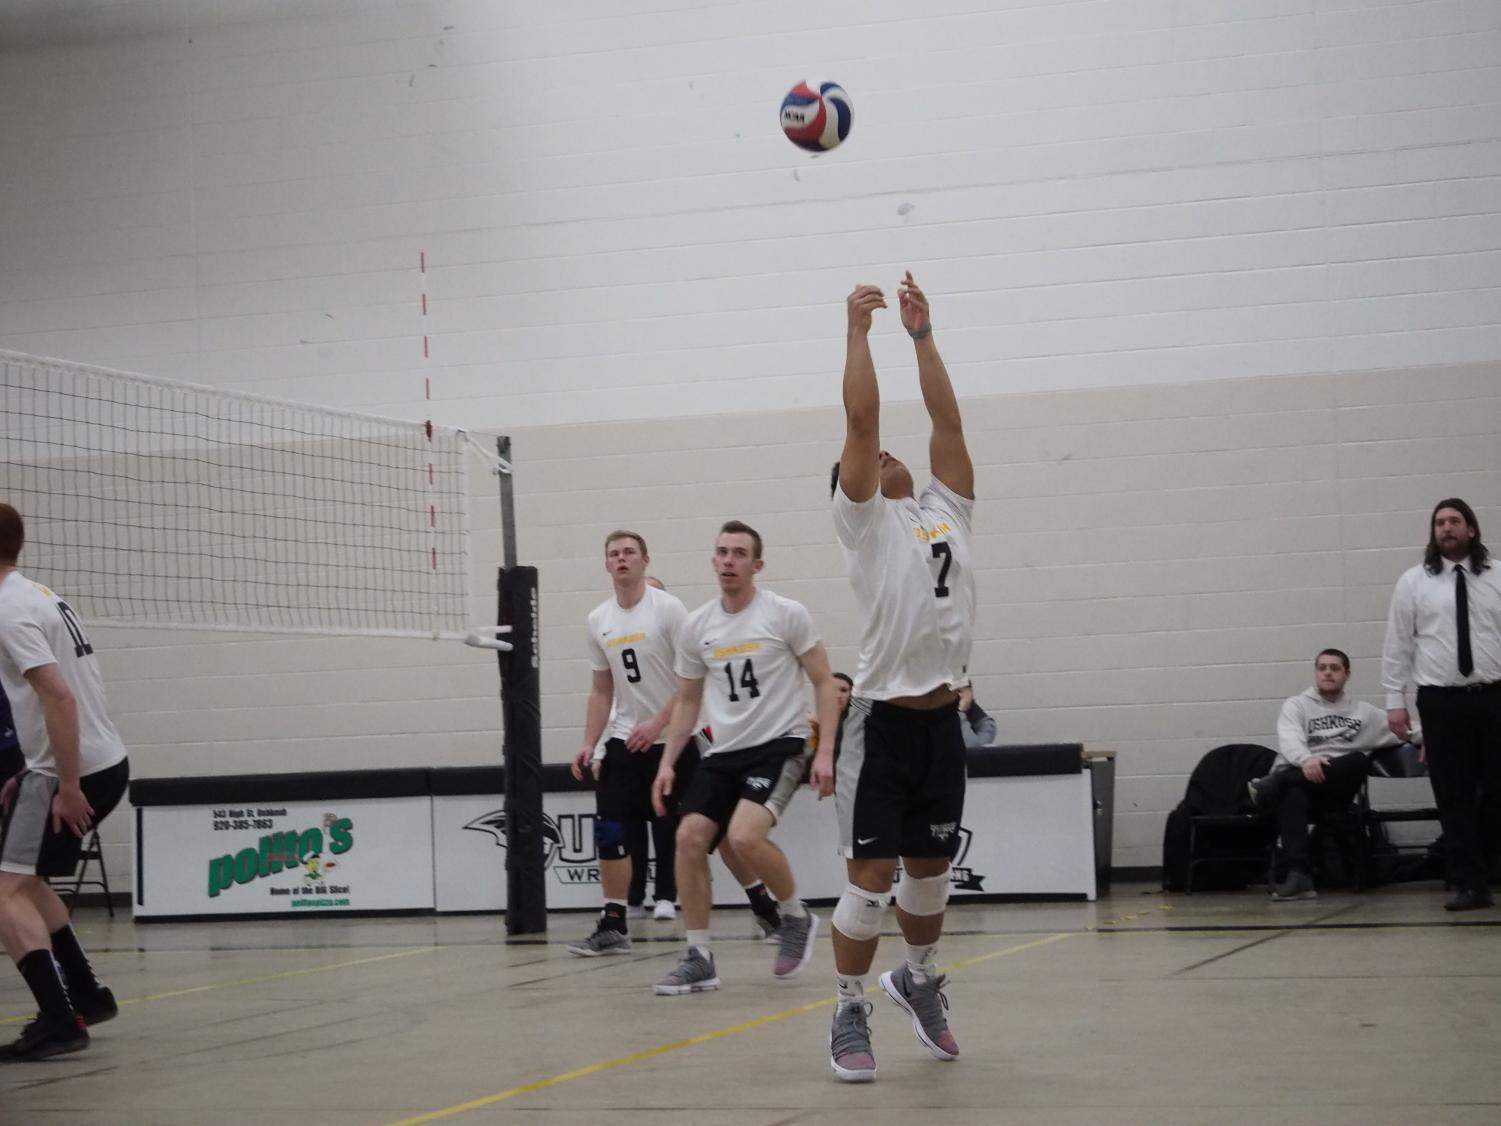 Senior libero/defensive specialist Samuel Moua returns the ball with a reverse bump against the UW-Whitewater Warhawks on March 8.